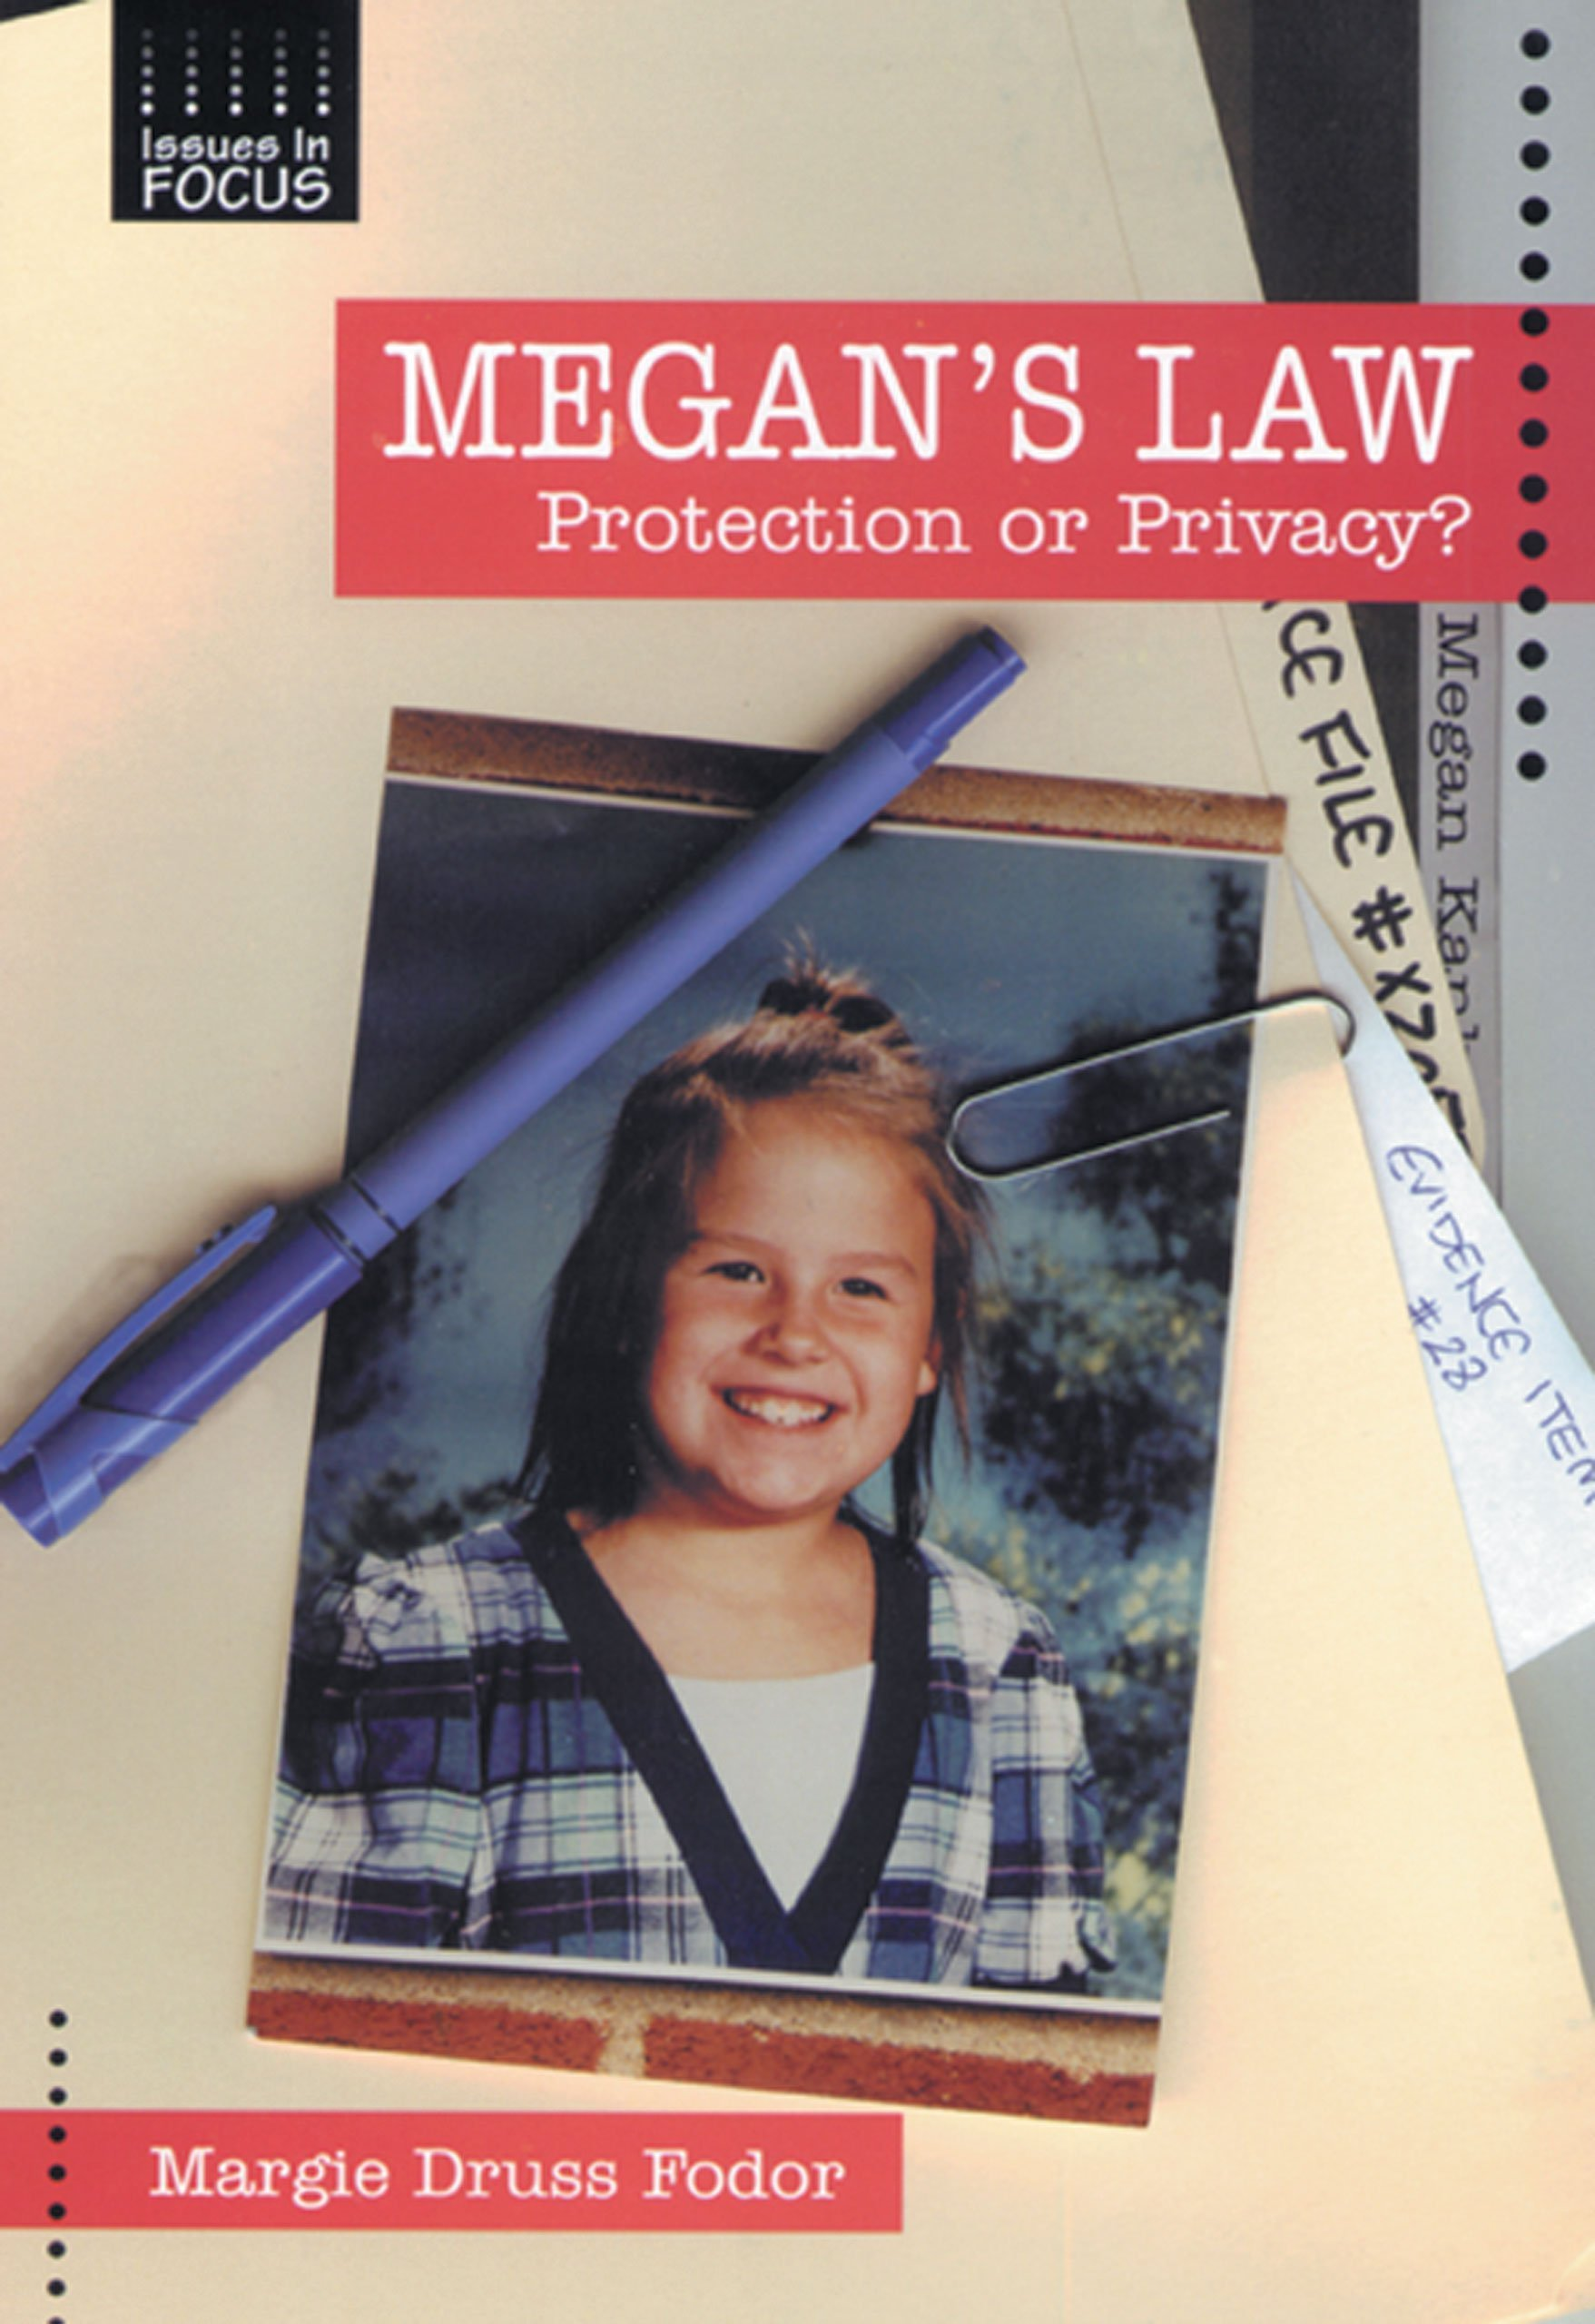 megan-s-law-protection-or-privacy-issues-in-focus